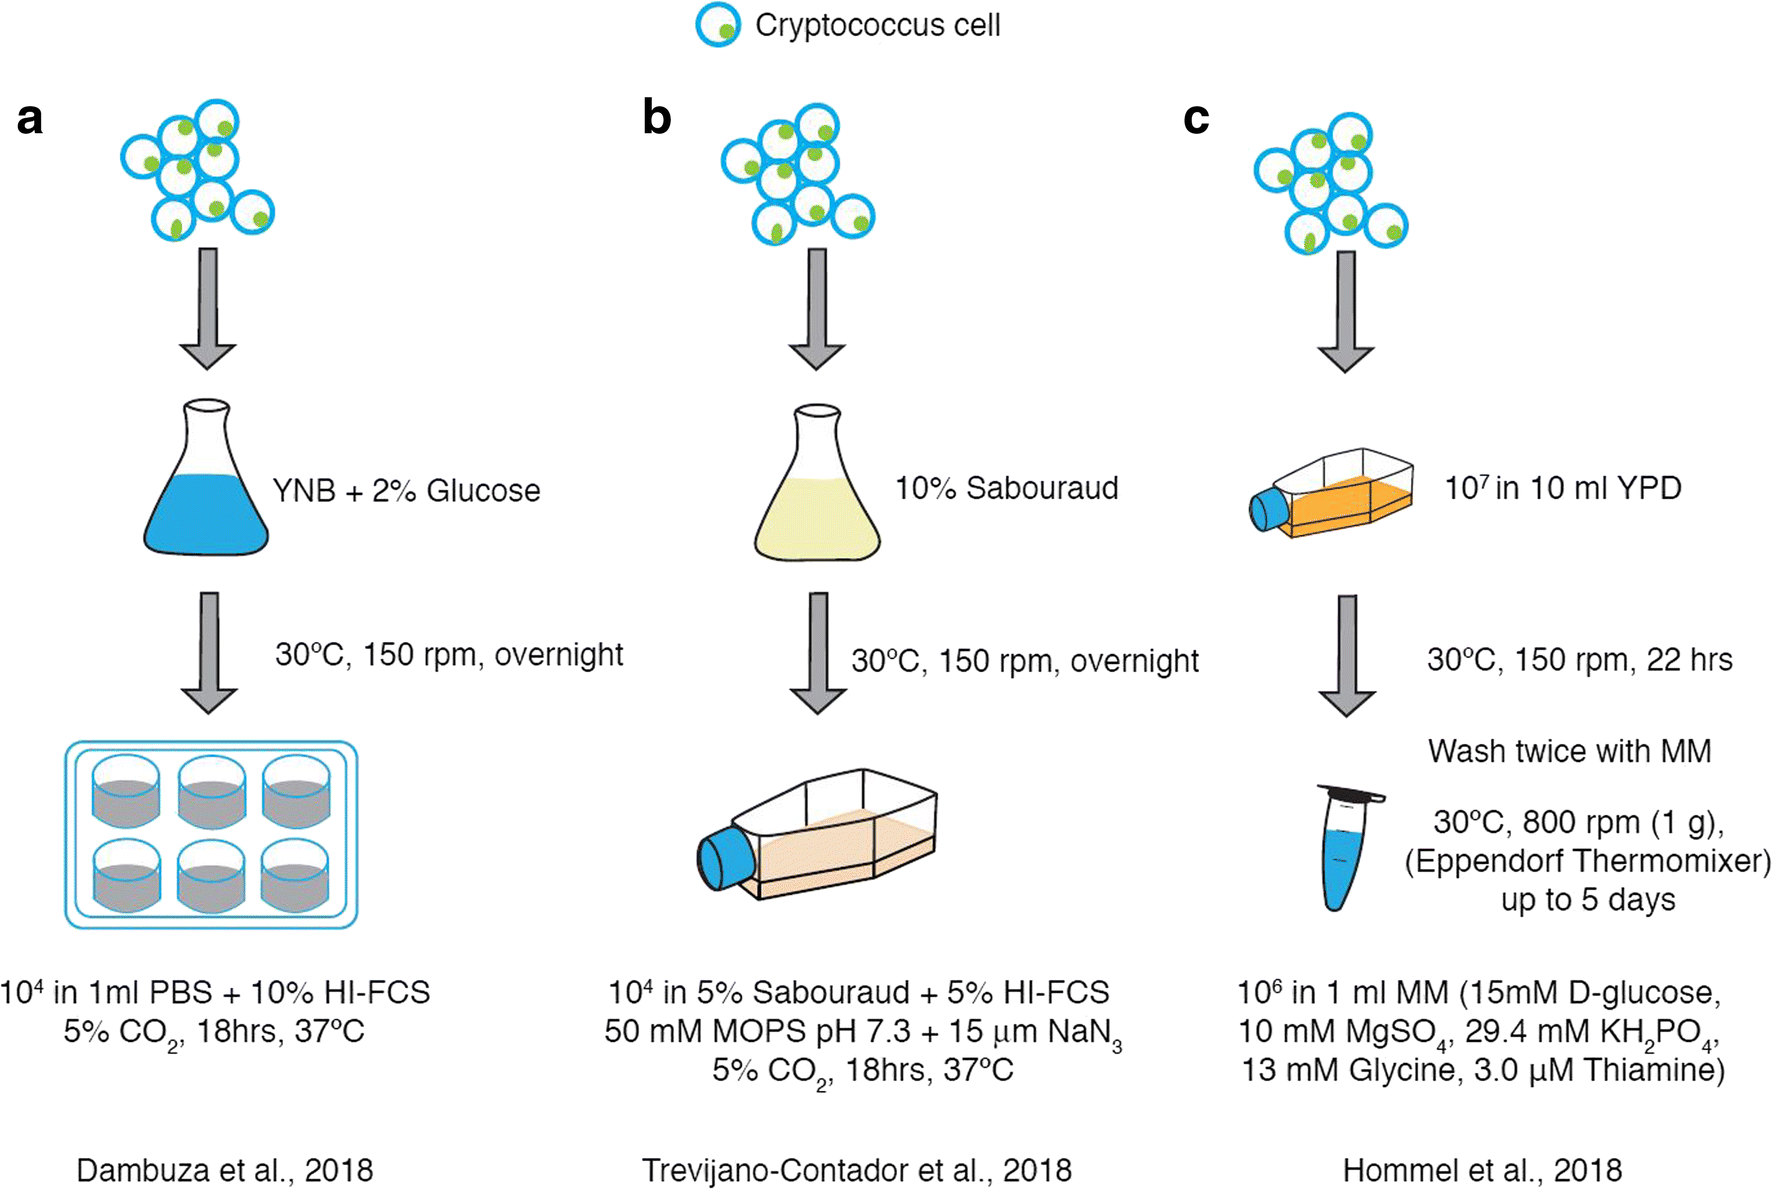 The Cryptococcus neoformans Titan Cell: From In Vivo